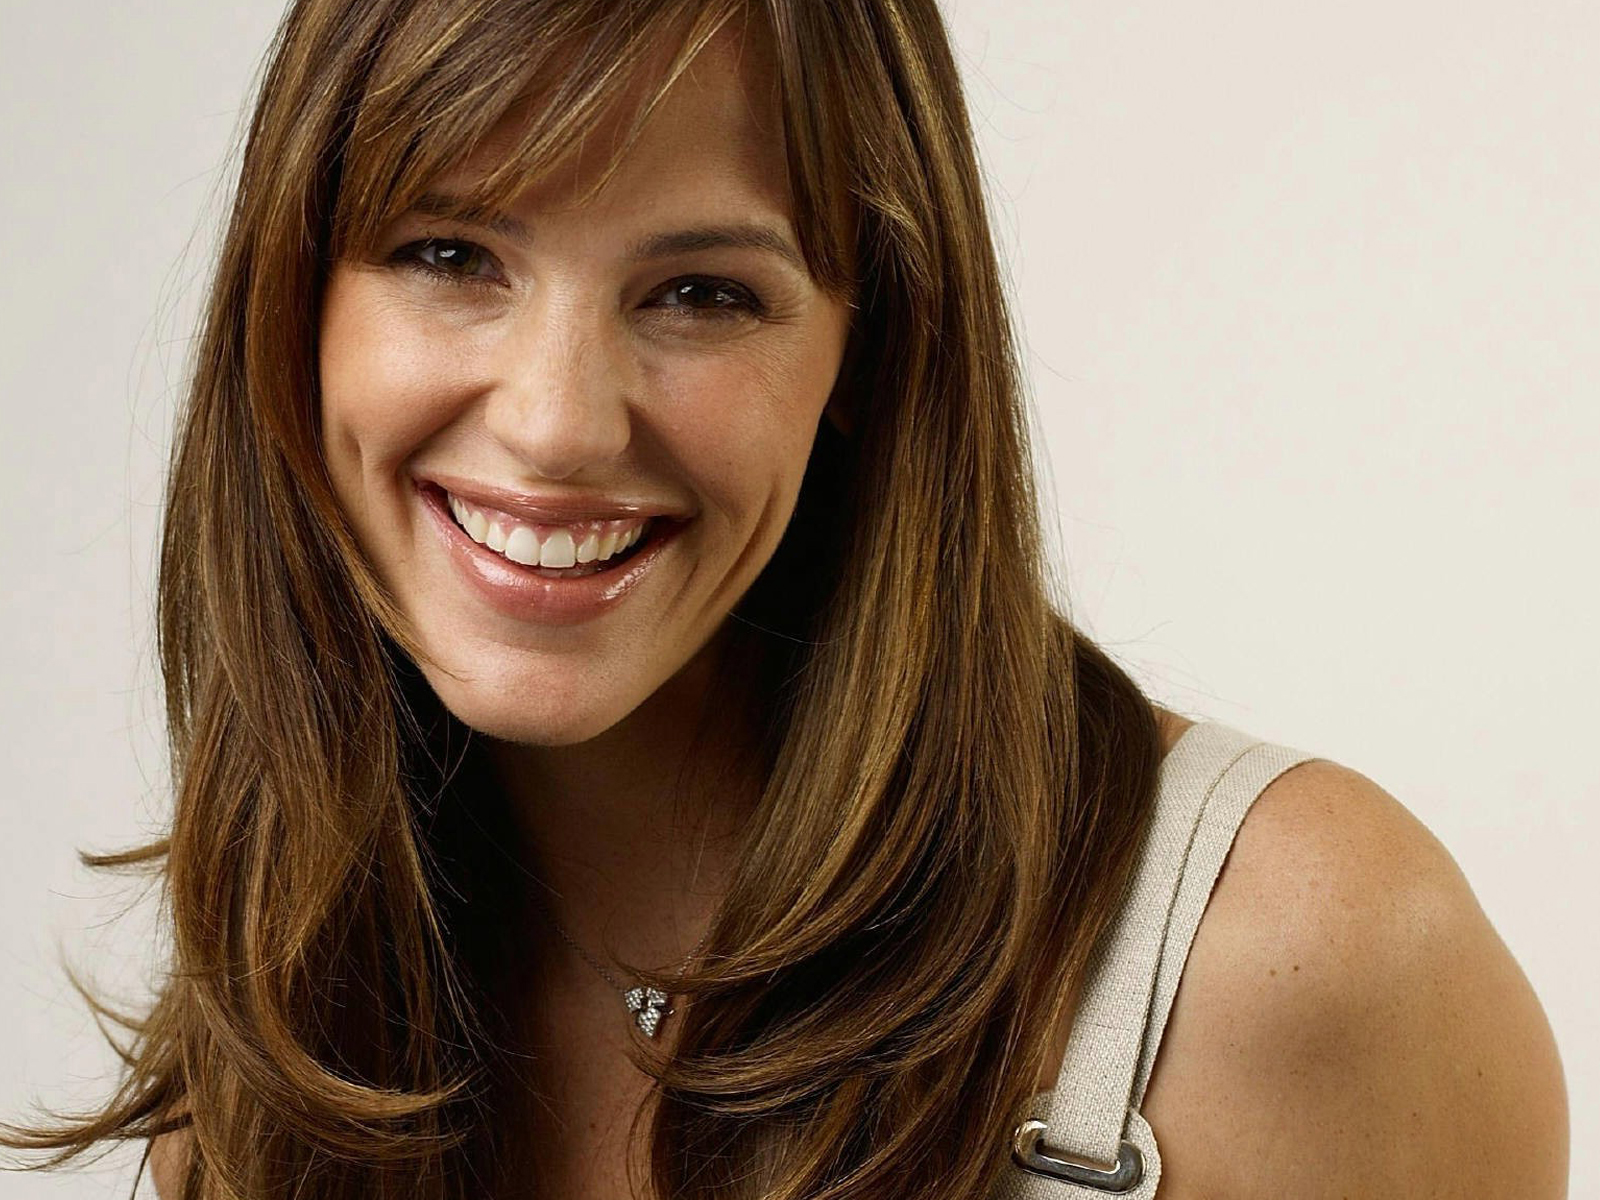 Jennifer Garner 196 Success Facts - Everything you need to know about Jennifer Garner